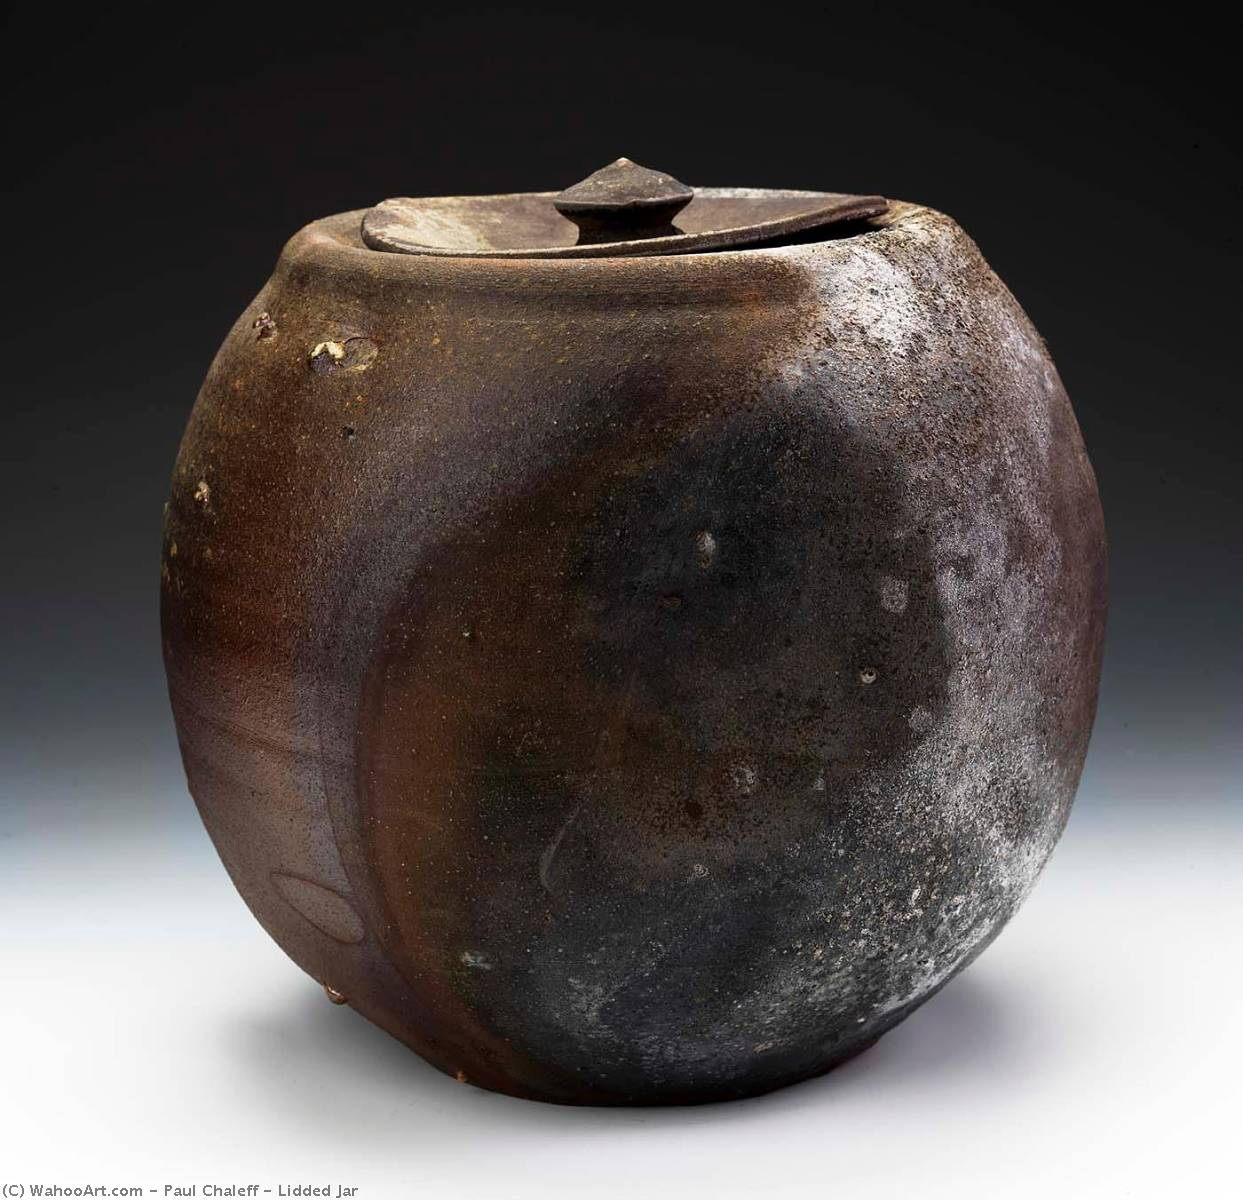 Lidded Pot, 1983 de Paul Chaleff | Reproductions De Qualité Musée Paul Chaleff | WahooArt.com